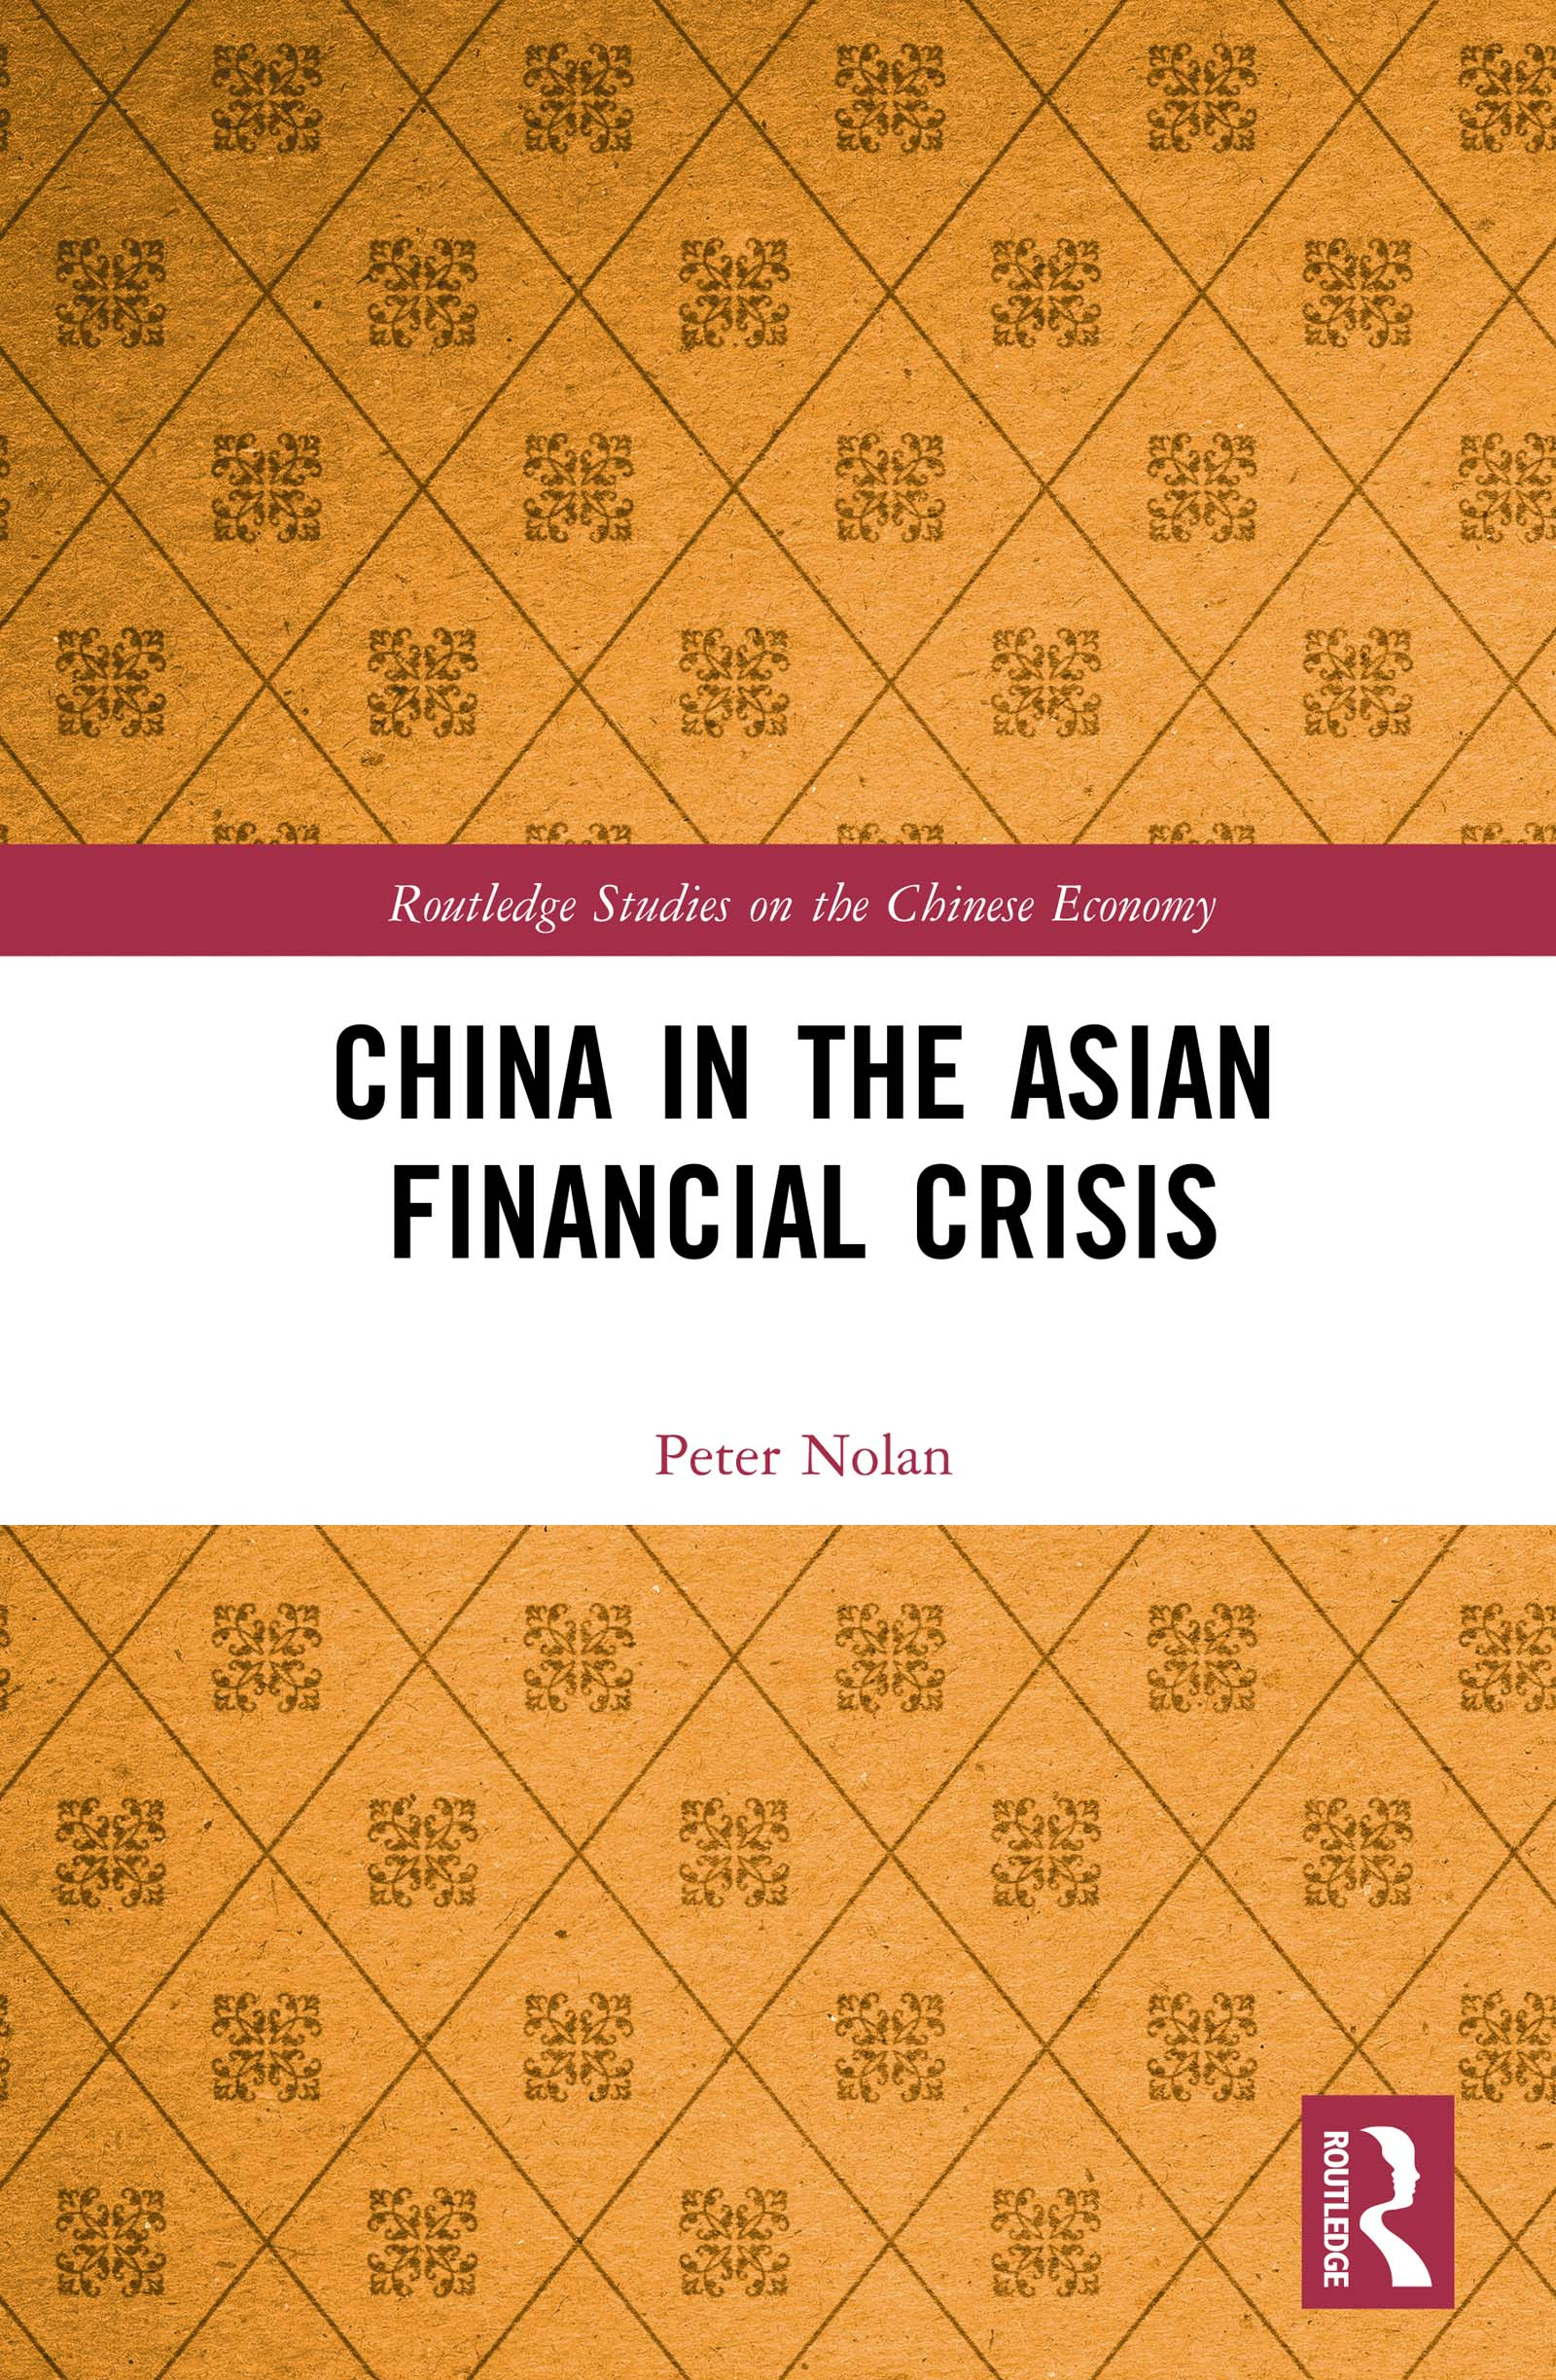 China in the Asian Financial Crisis